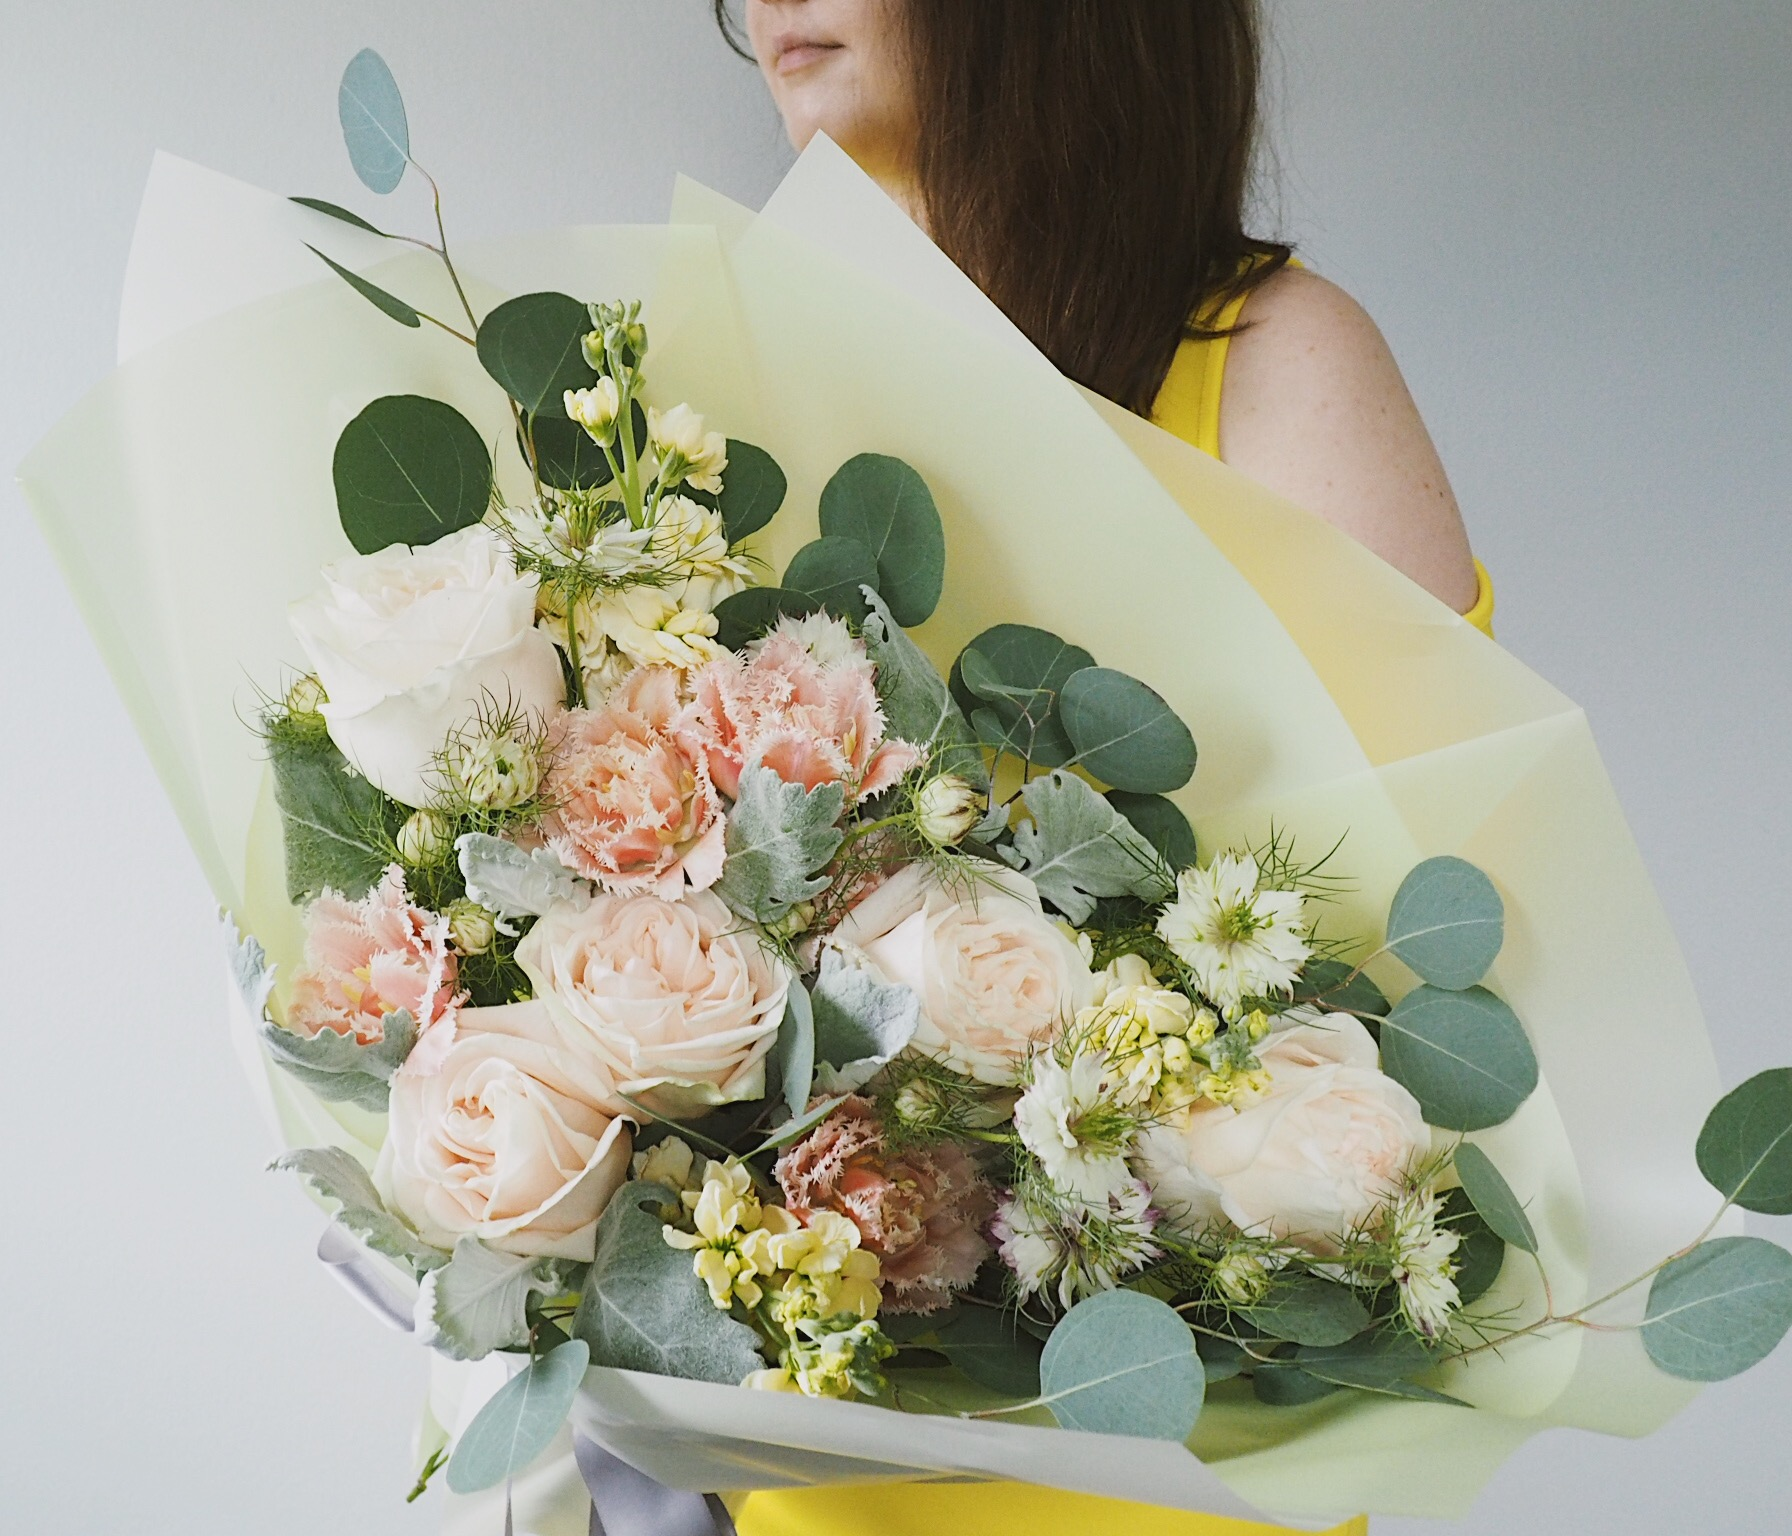 Peachy spring flower bouquet wrap for birthday engagement baby shower